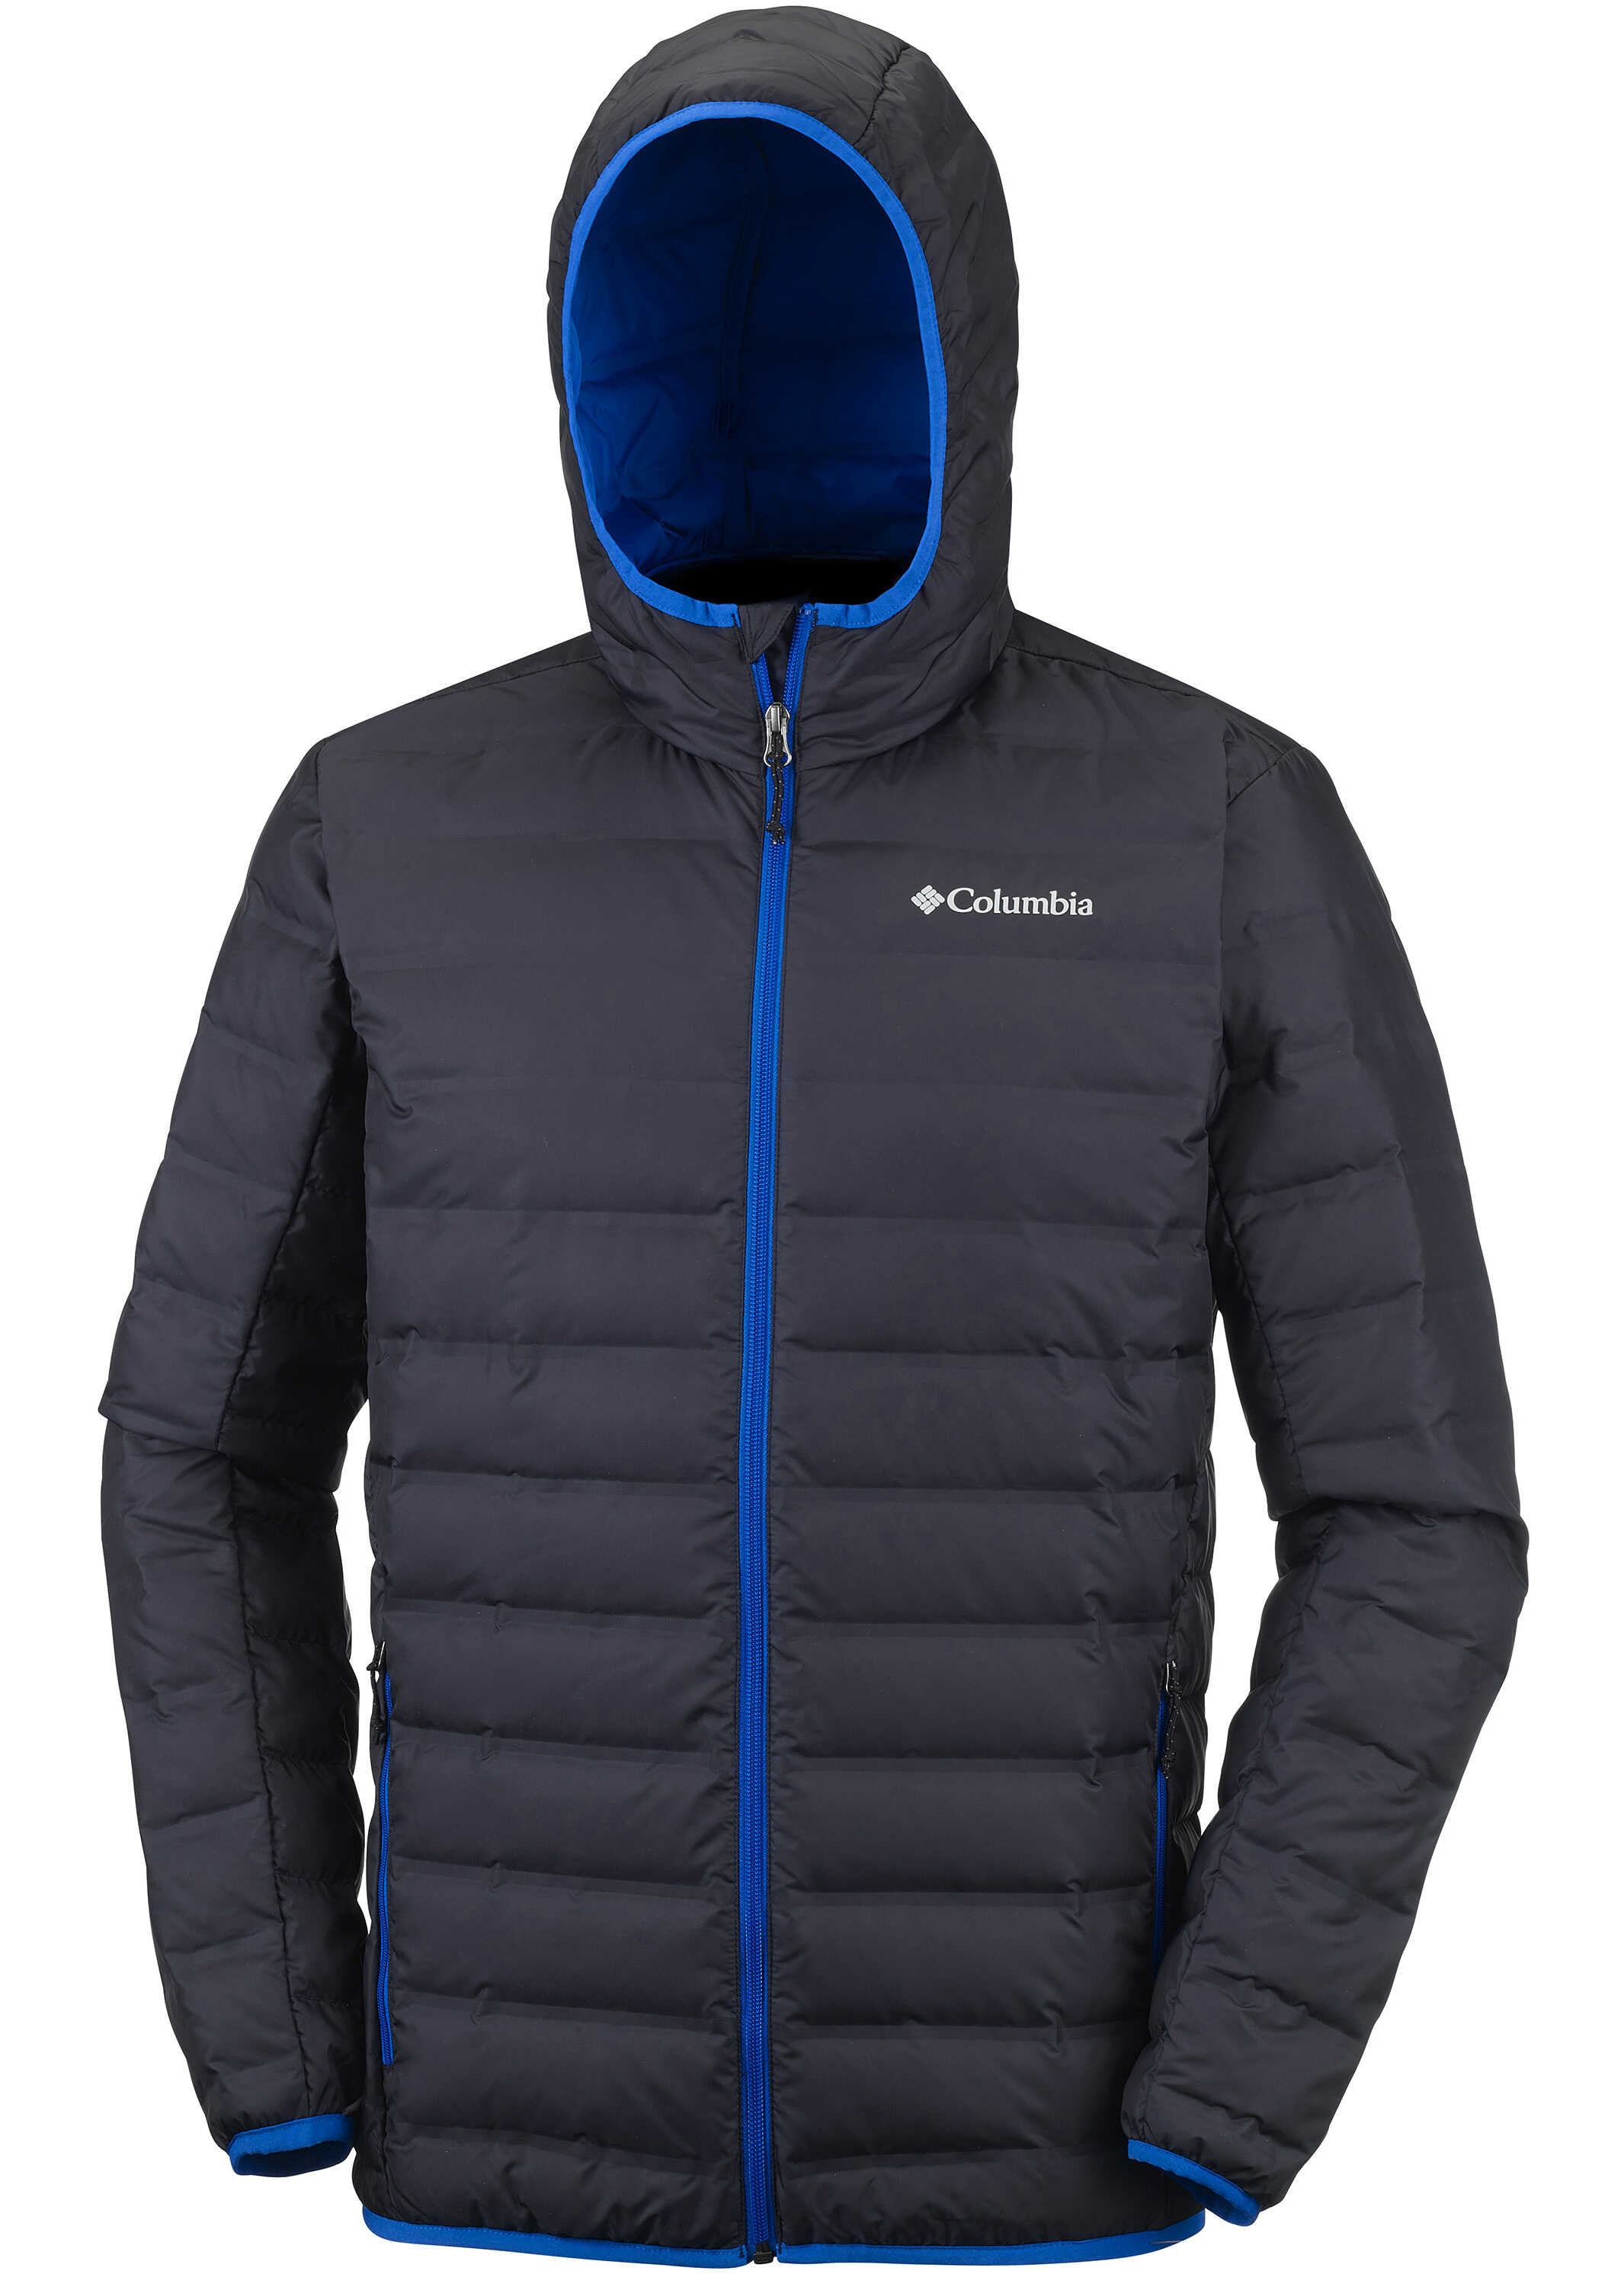 Columbia Lake 22 Down Hooded Jacket-Deep Rust/Hot Pepper Black/Super Blue